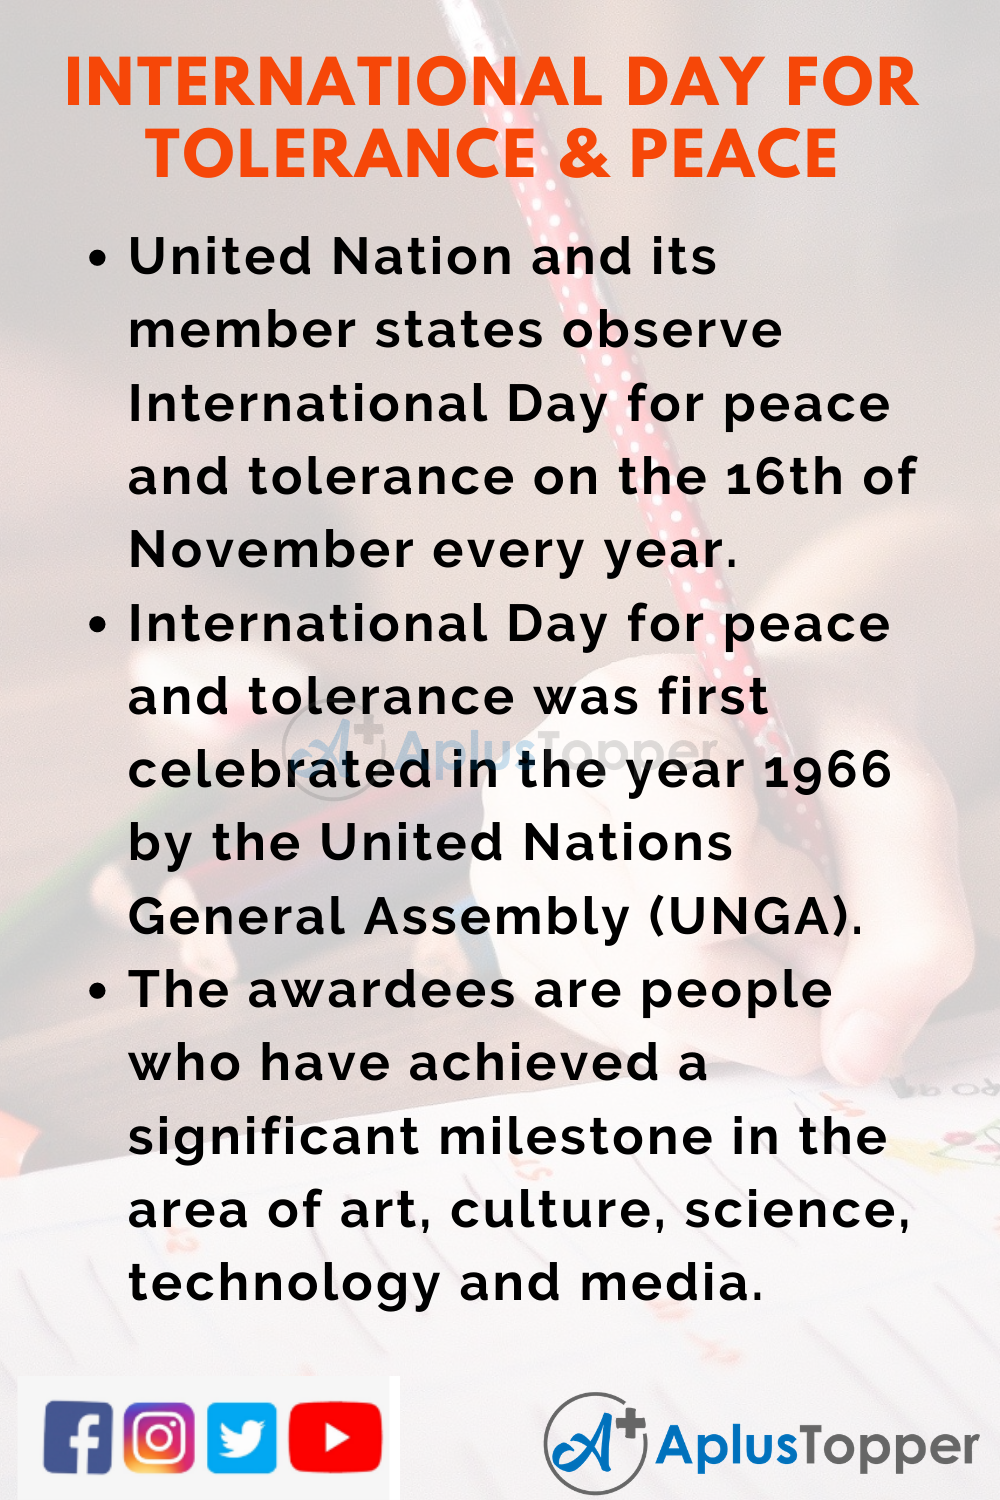 10 Lines on International Day for Tolerance and Peace for Kids